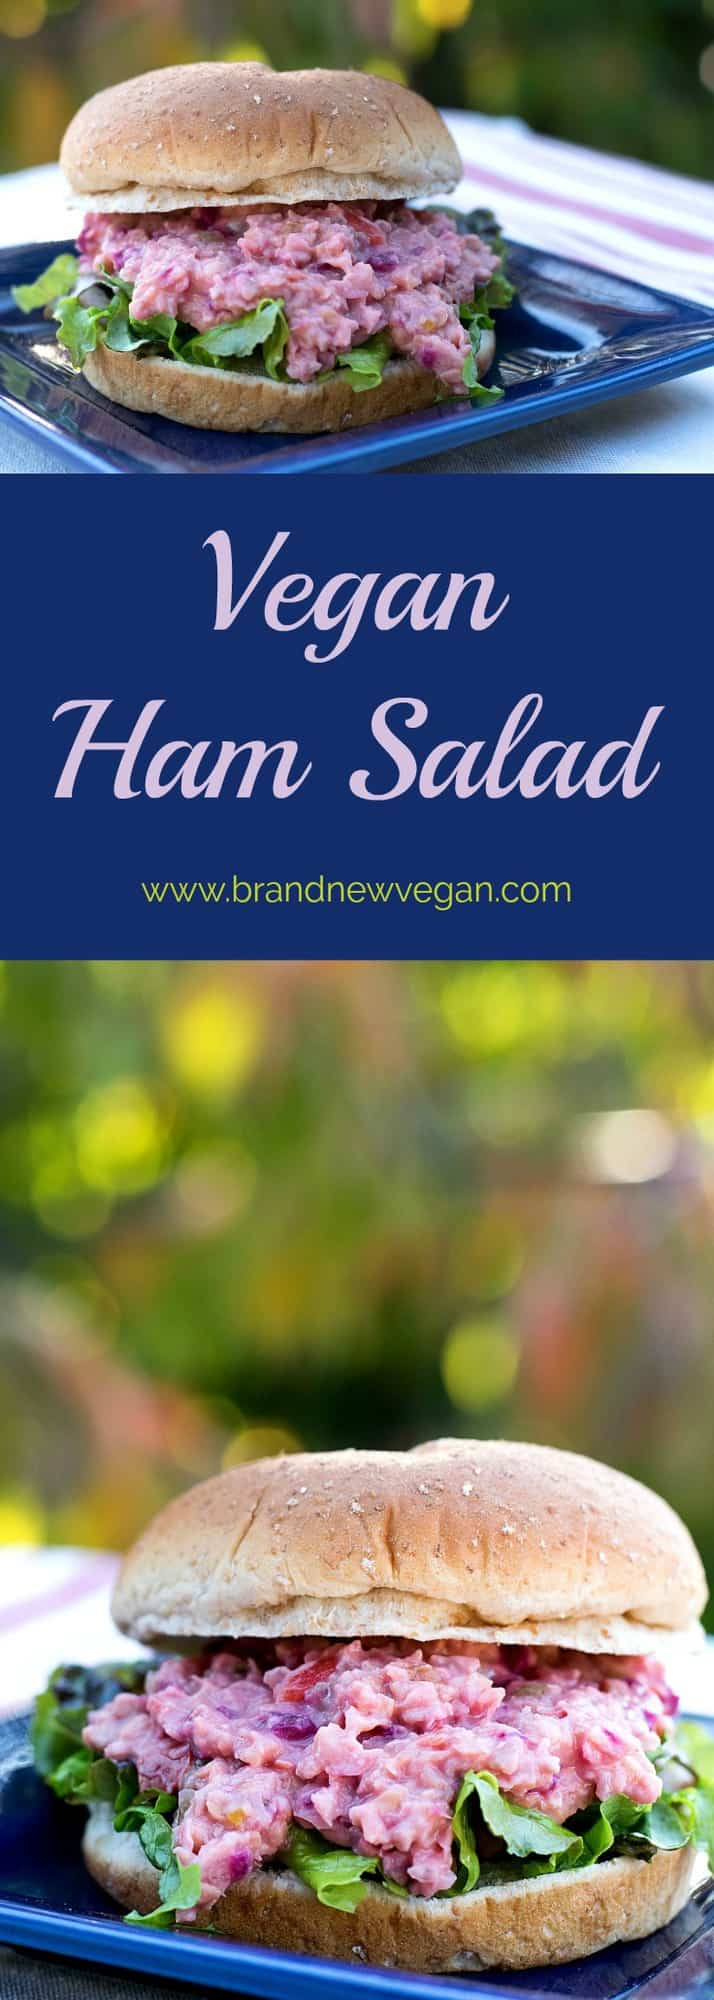 This Vegan Ham Salad is a tasty blend of chickpeas, red bell pepper, pineapple, and beet to replicate my favorite midwestern sandwich spread.